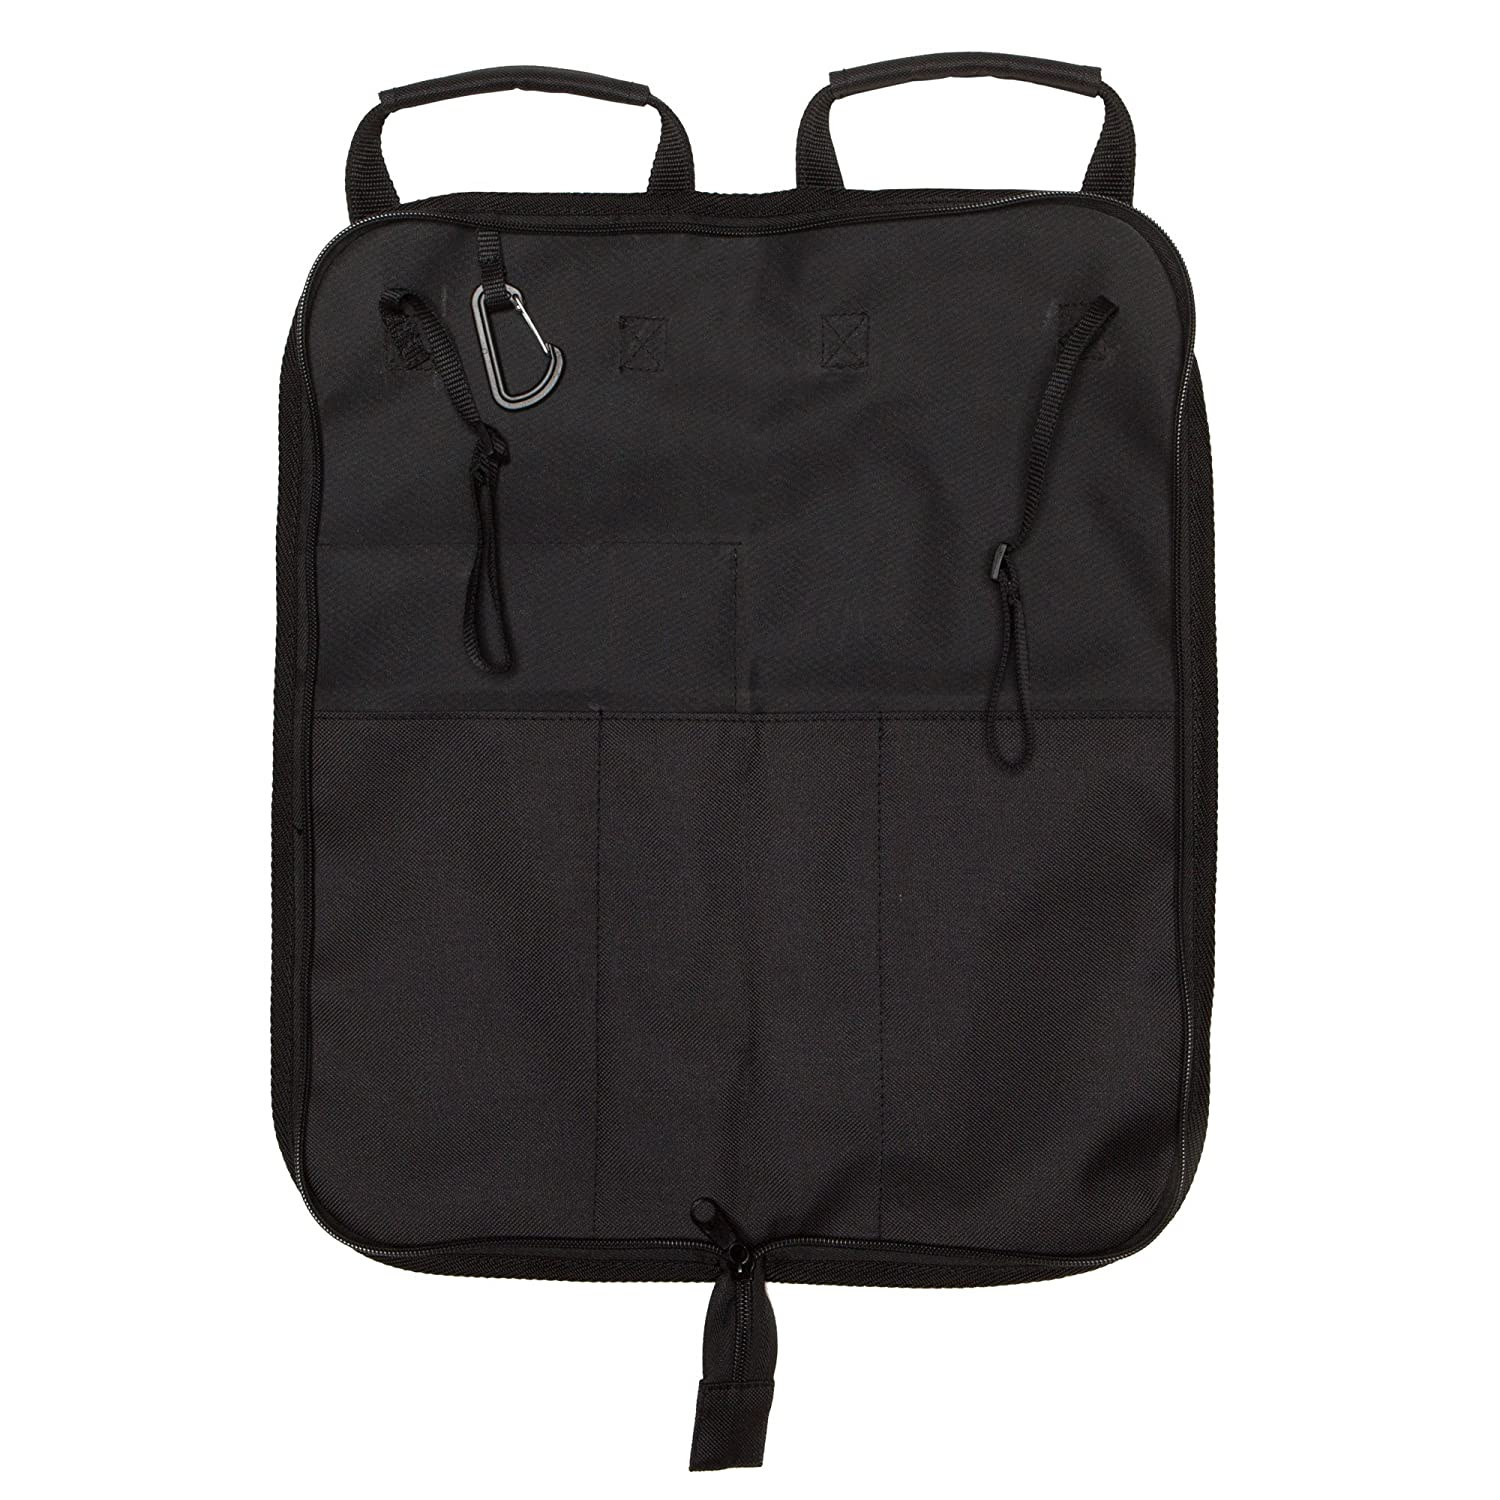 Amazon.com: Zildjian Basic bolsa para baquetas: Musical ...